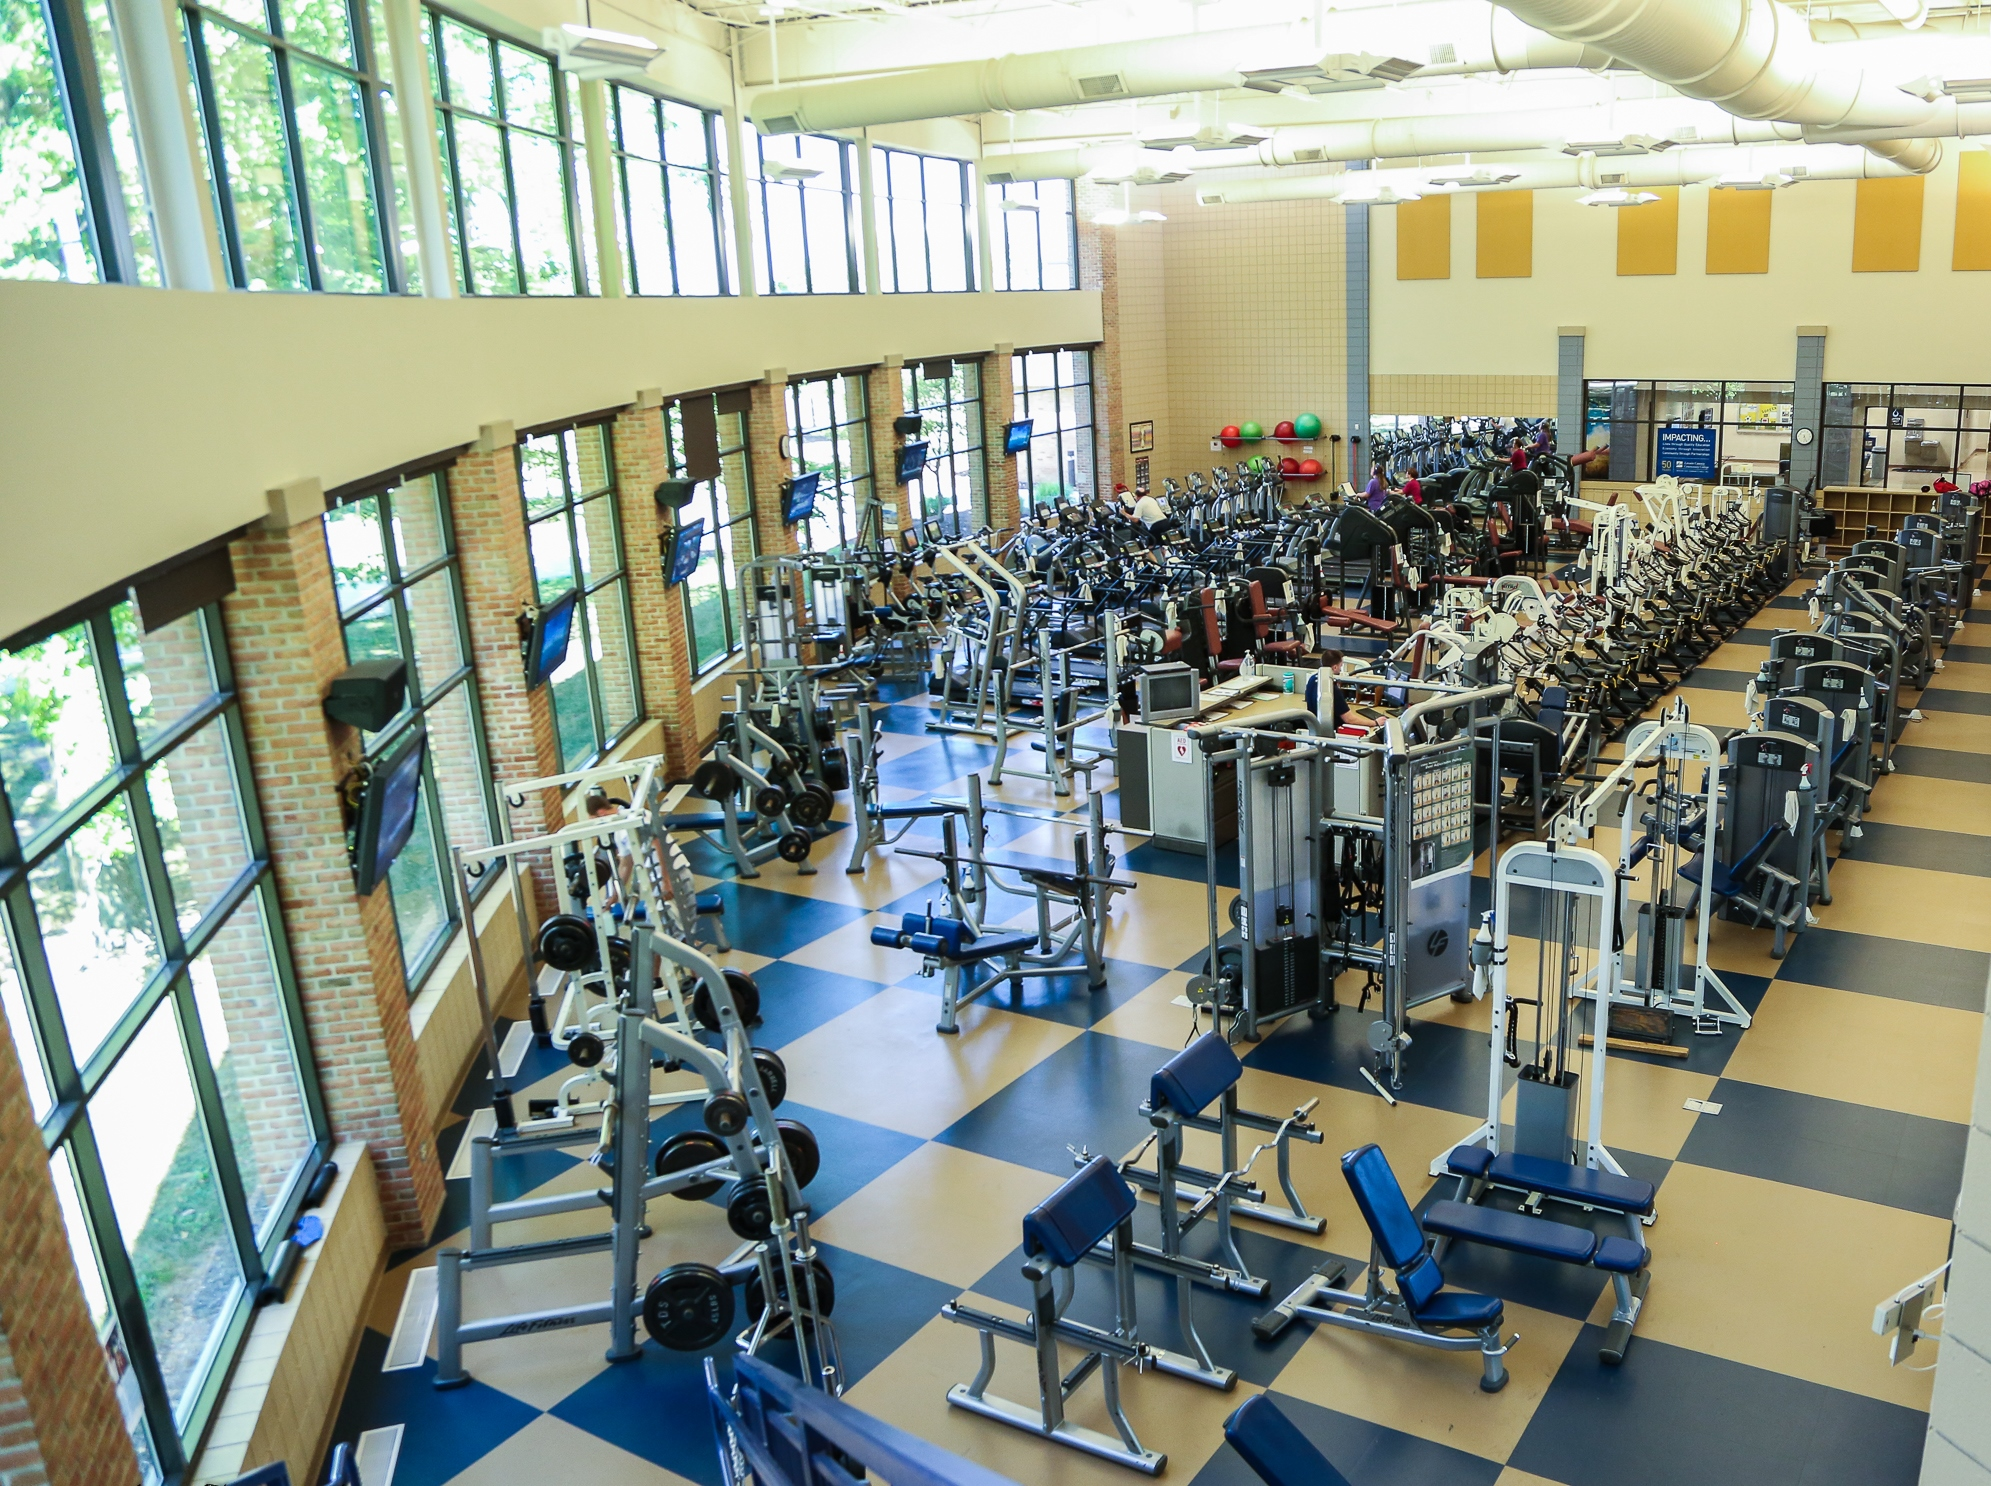 The LCCC Fitness center with equipment